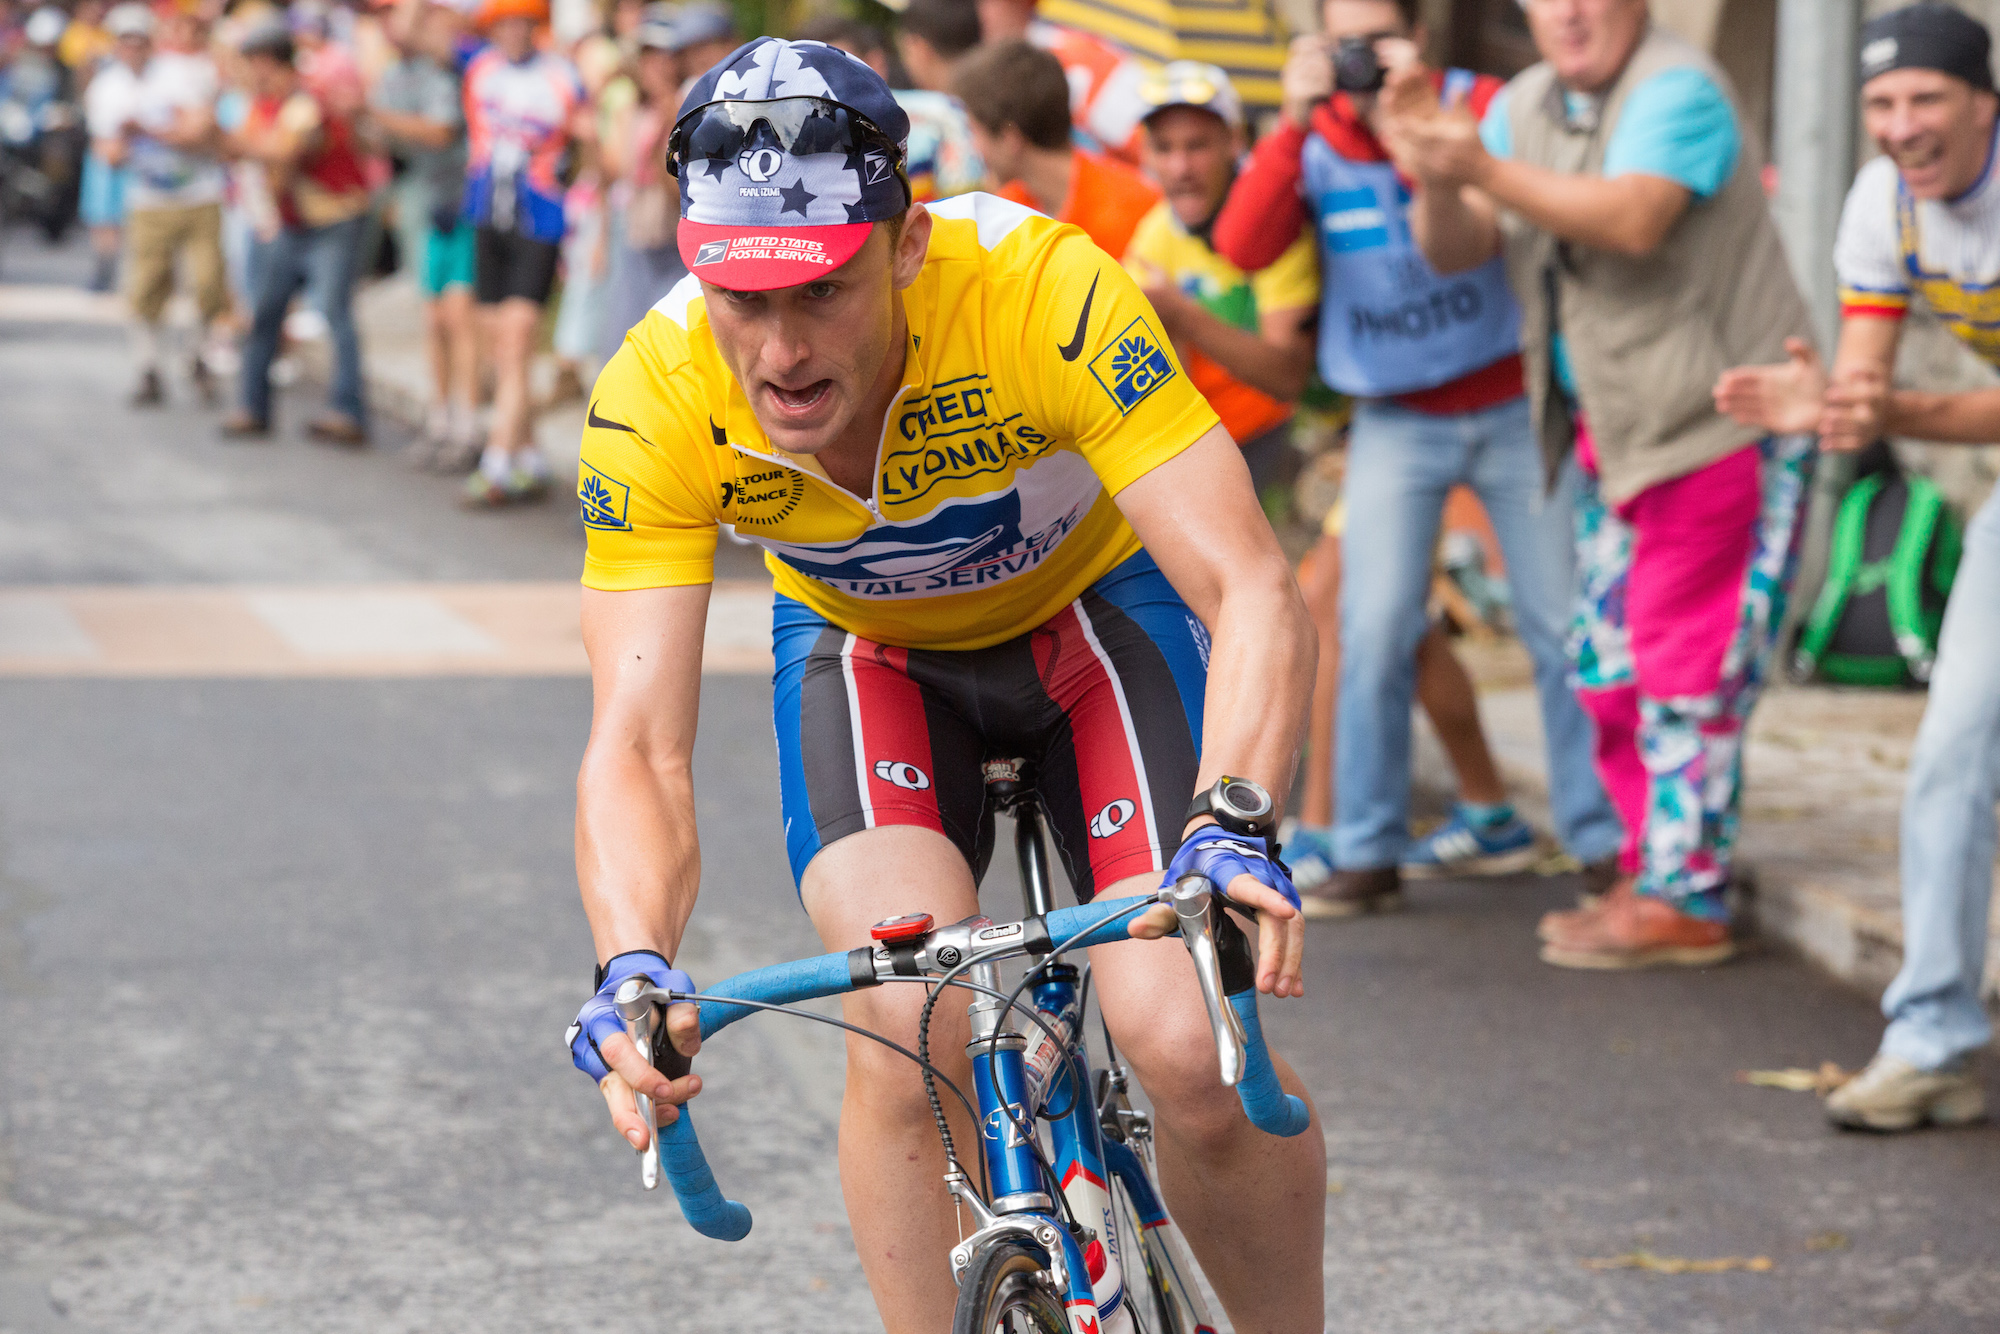 Ben Foster plays Lance Armstrong in The Program, directed by Stephen Frears.